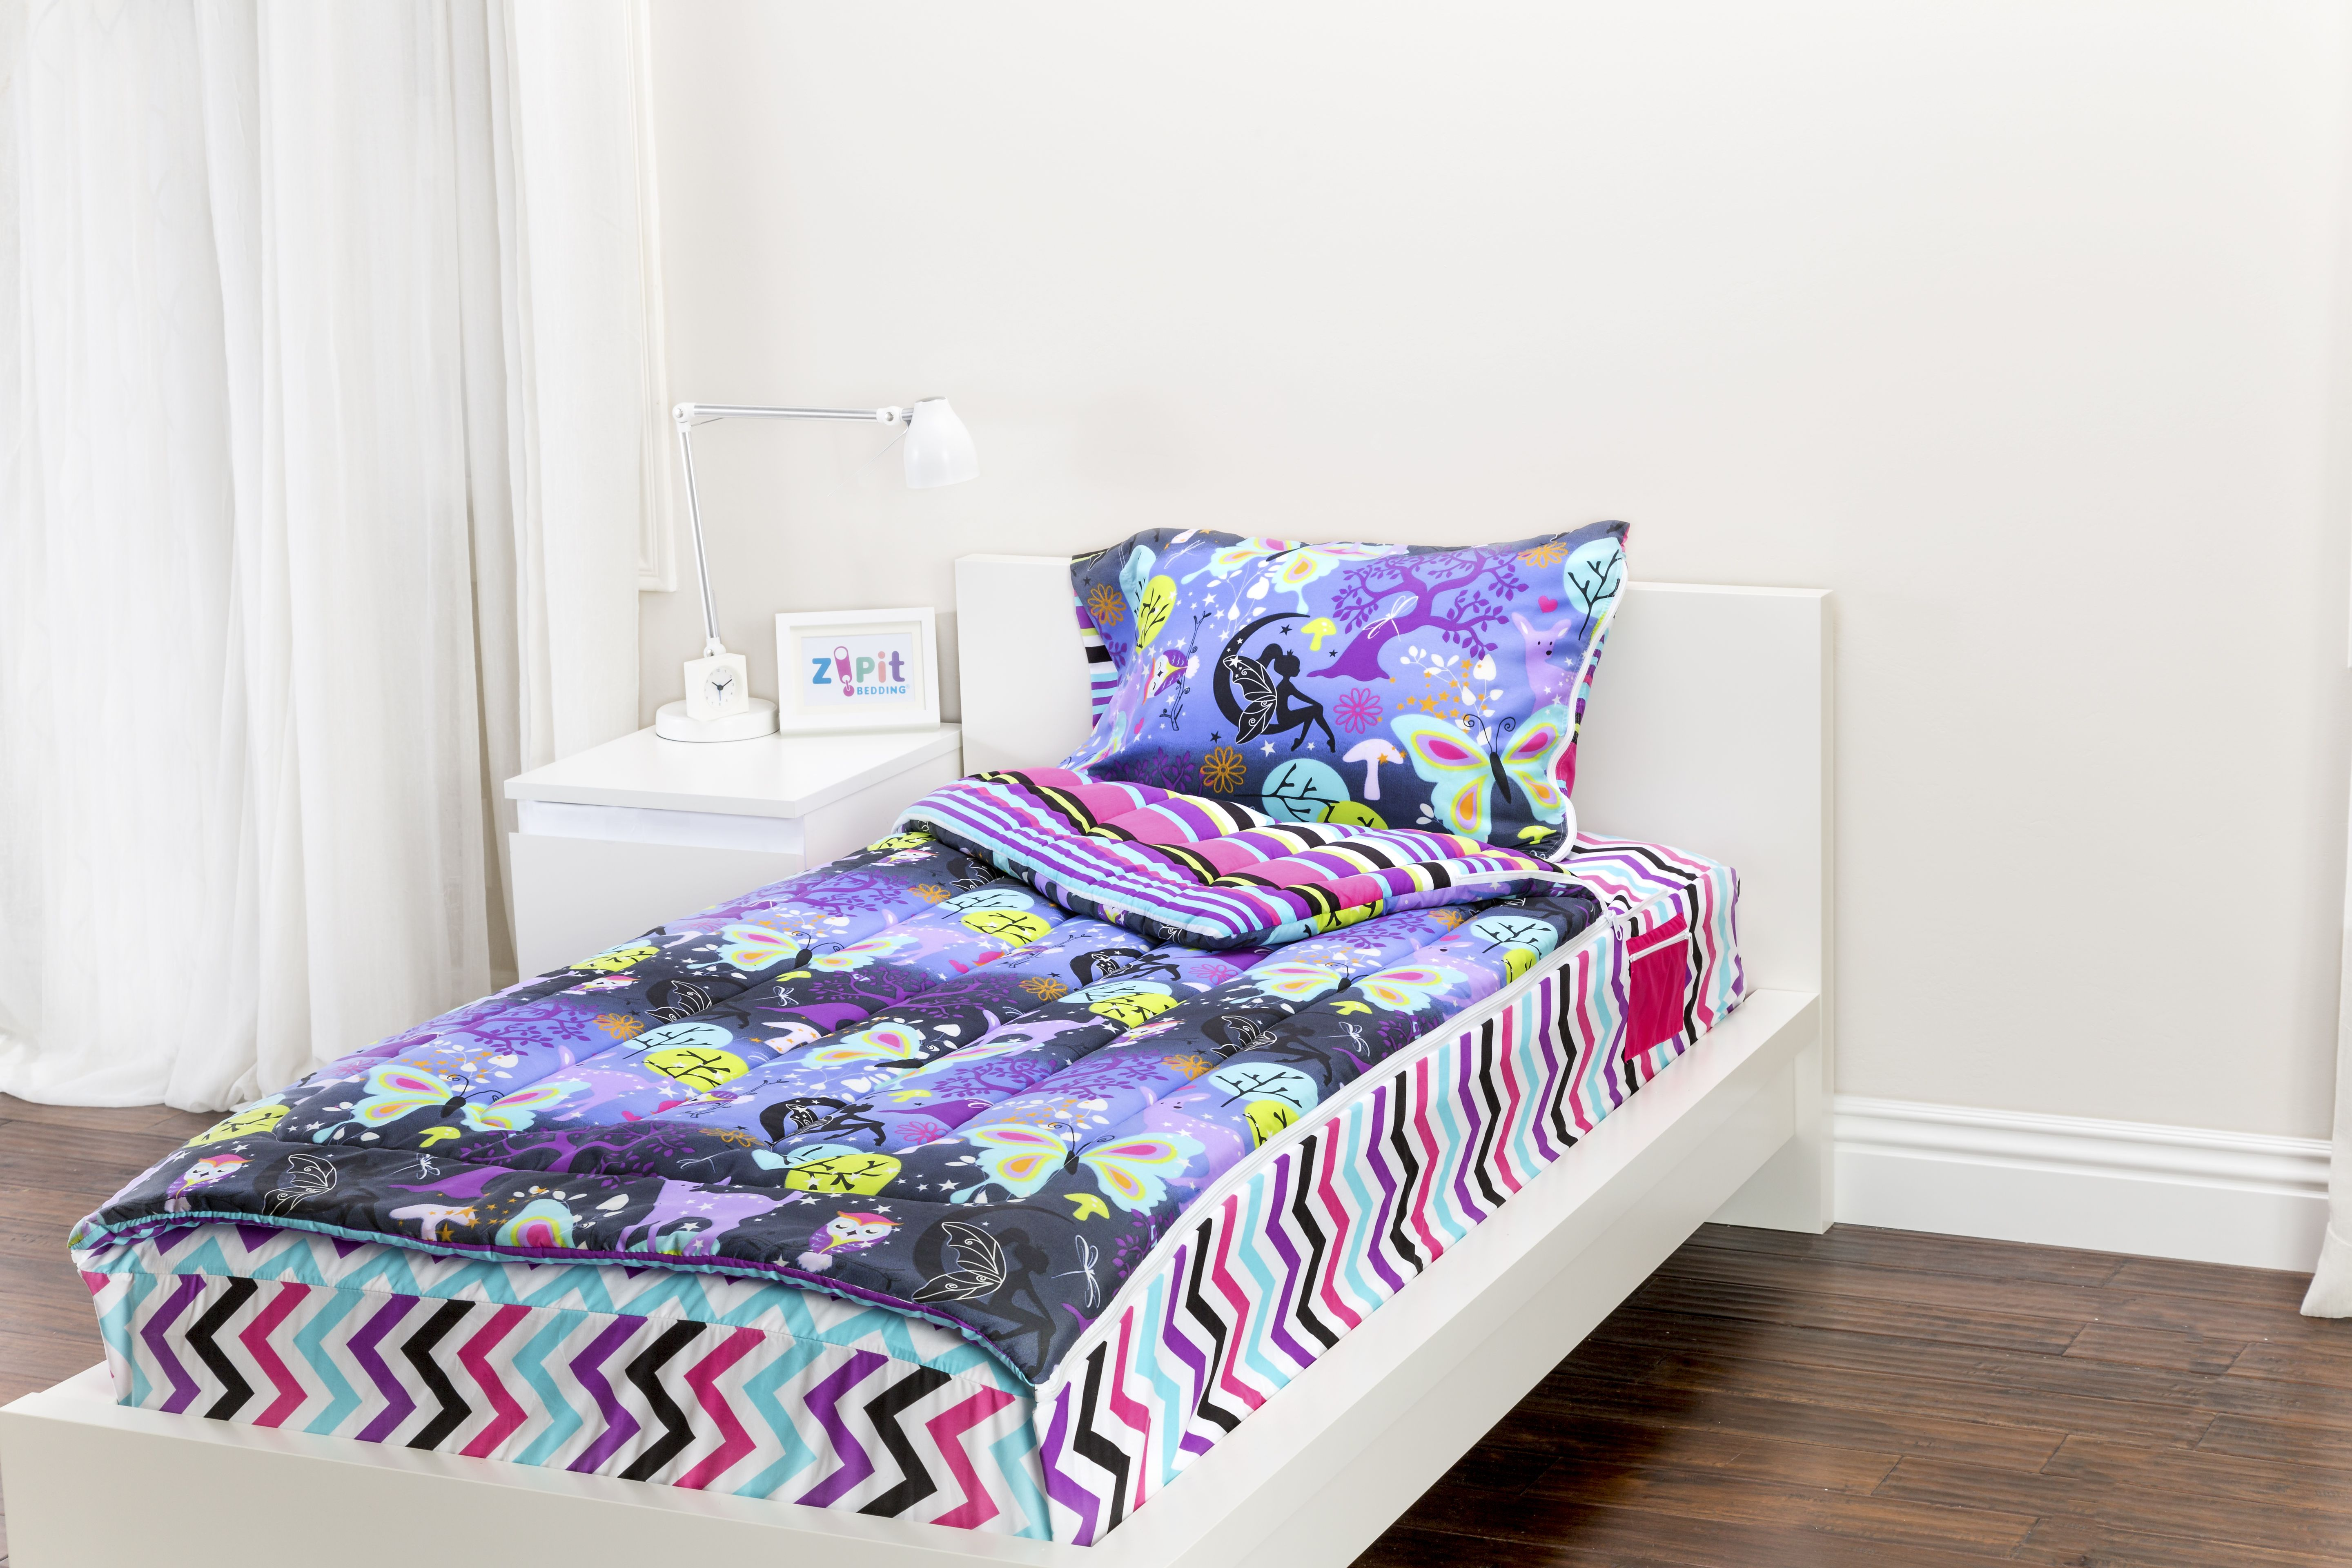 Zipit Bedding Mix 'N Match with Fantasy Forest and Rocker